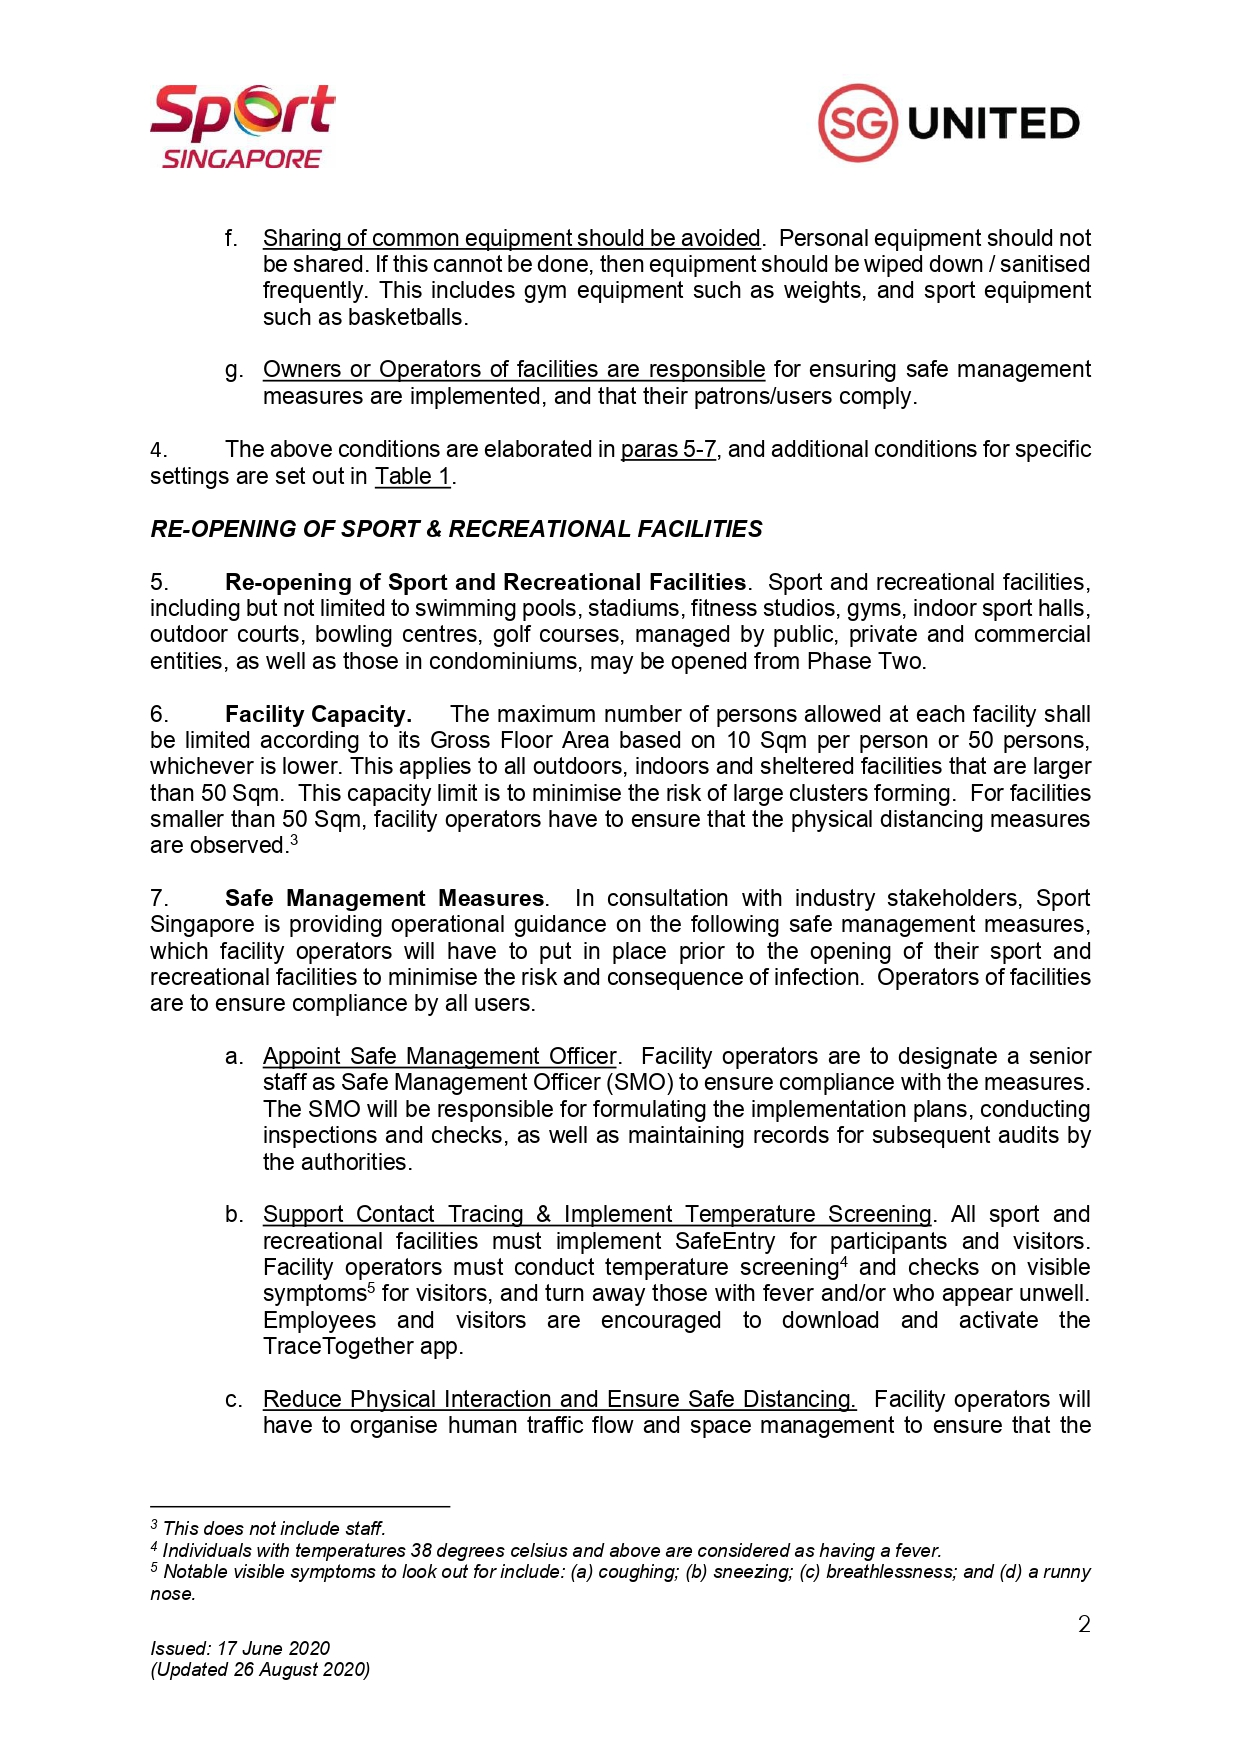 Sportsg Updated Advisory For Resumption Of Sport And Physical Exercise And Activity For Phase Two Safe Transition